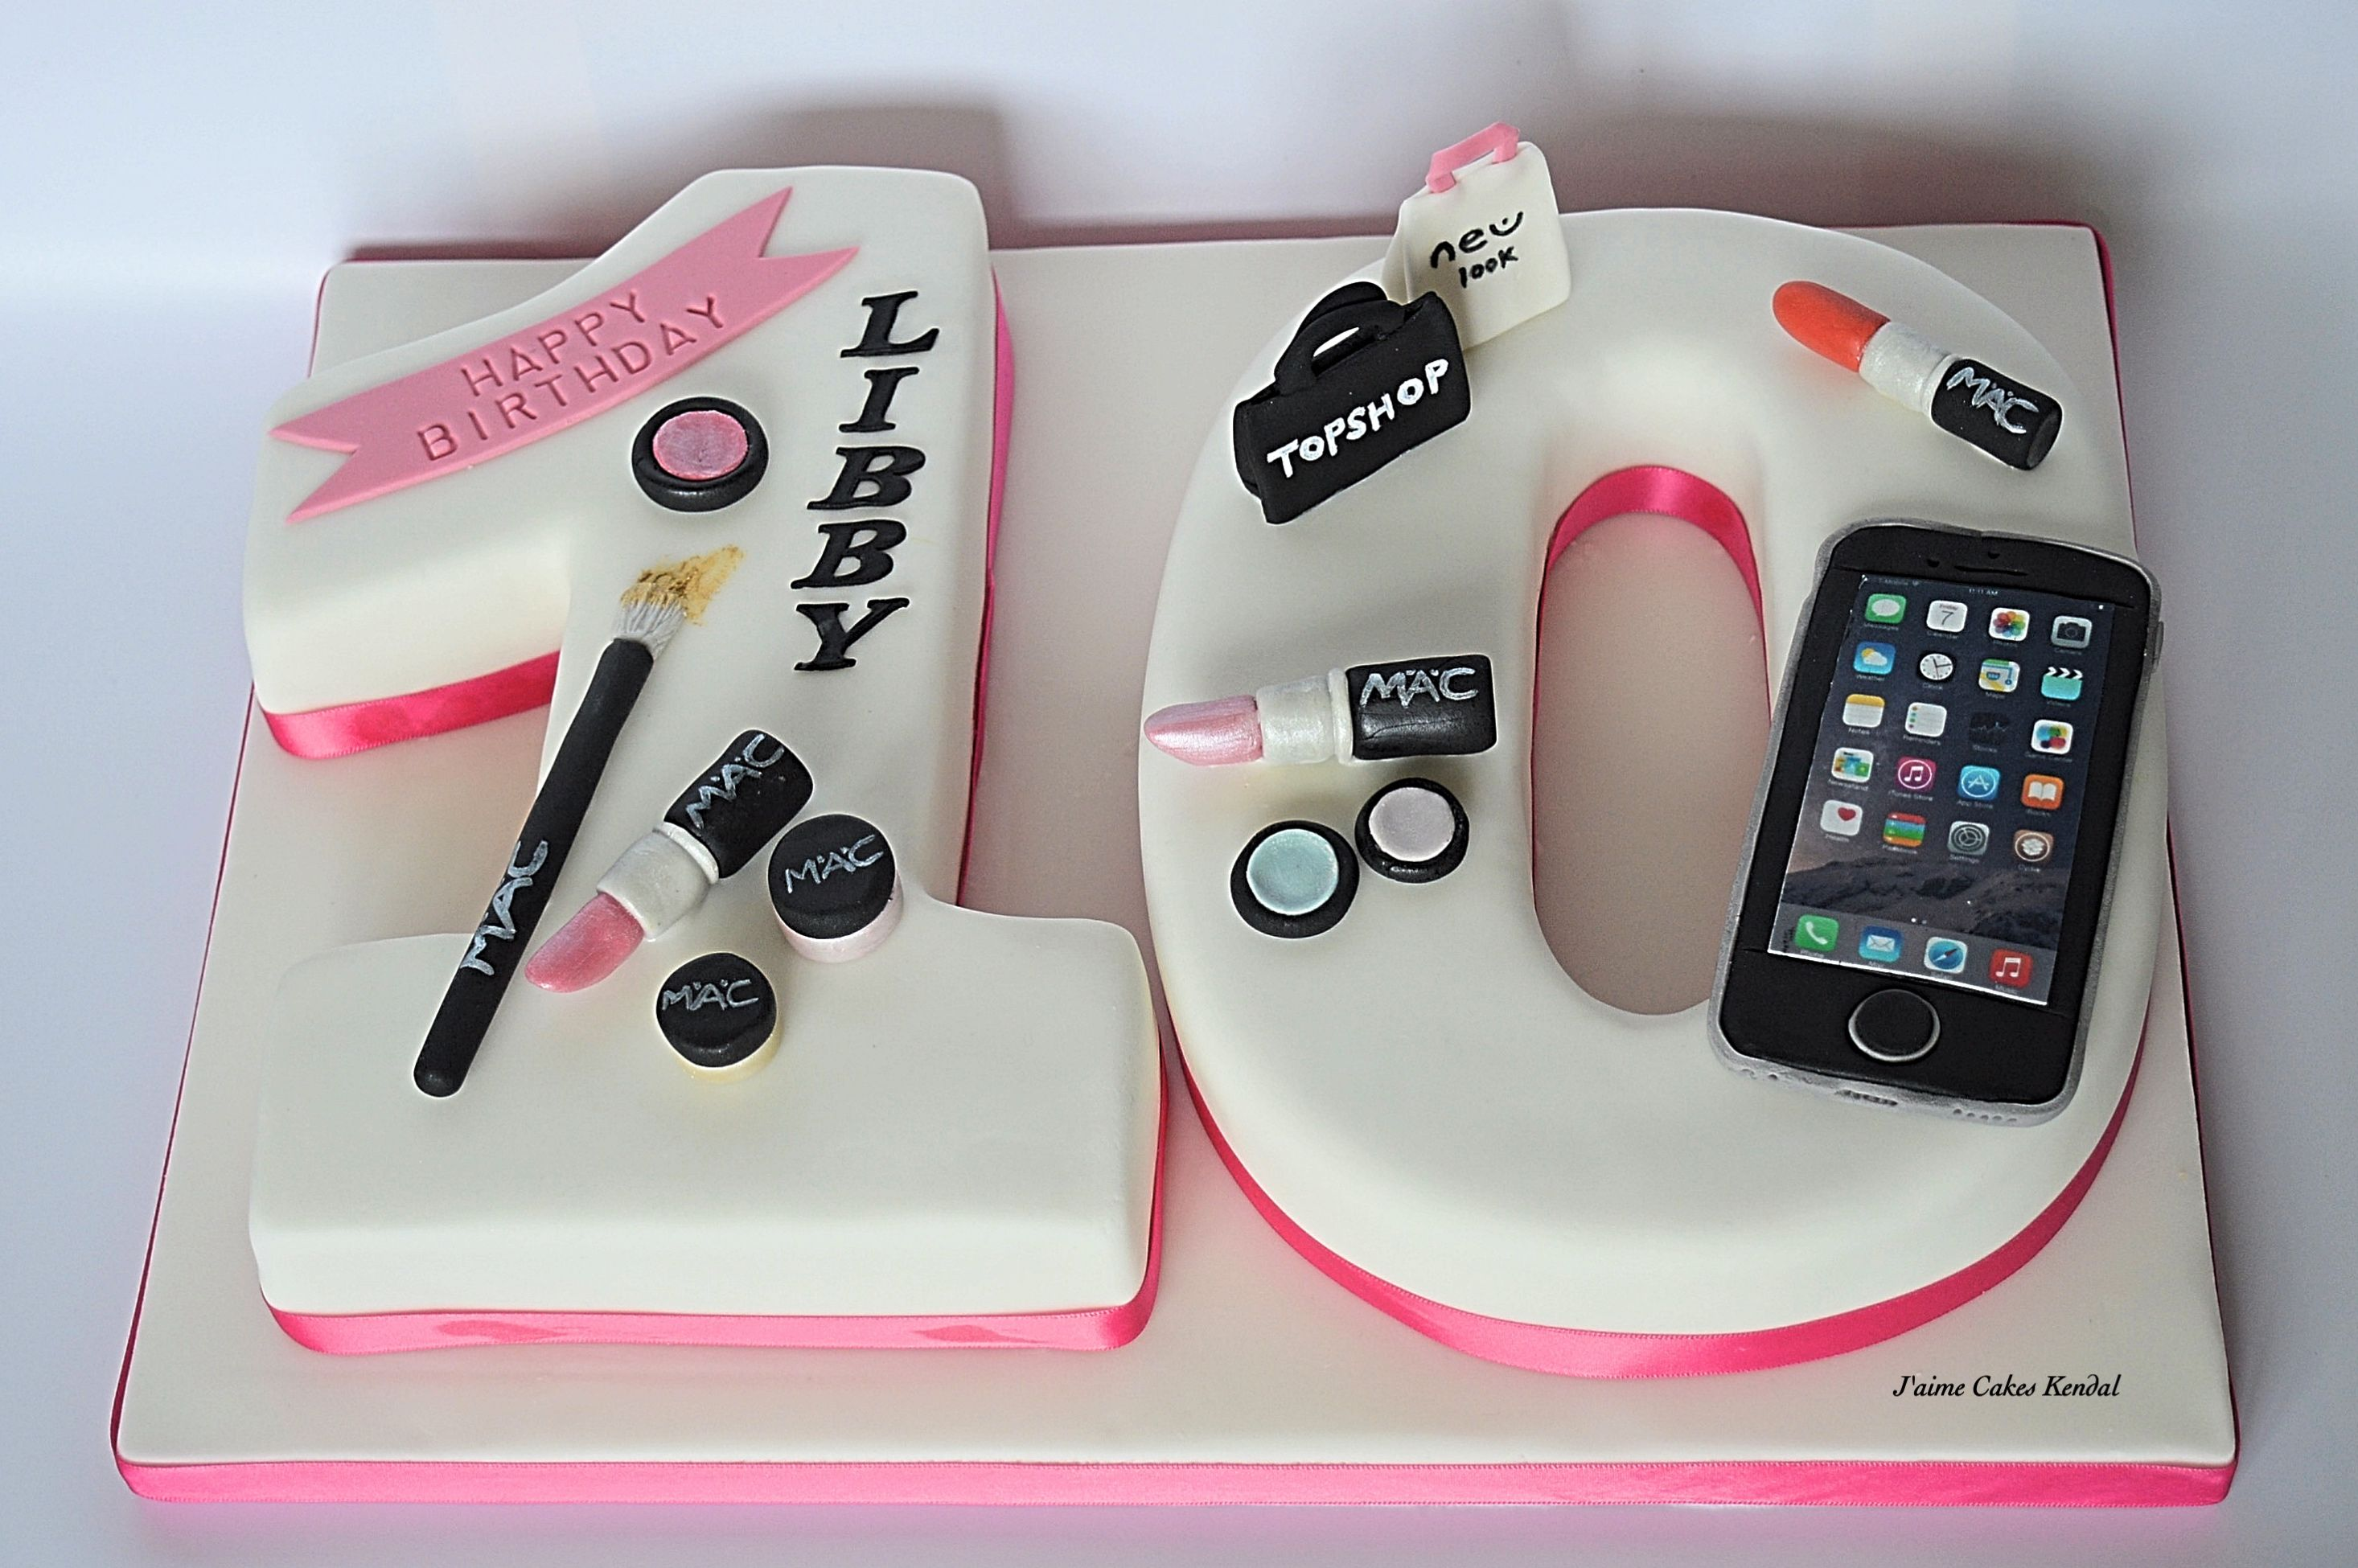 number 10 cake girls birthday Mac makeup I phone 6 shopping